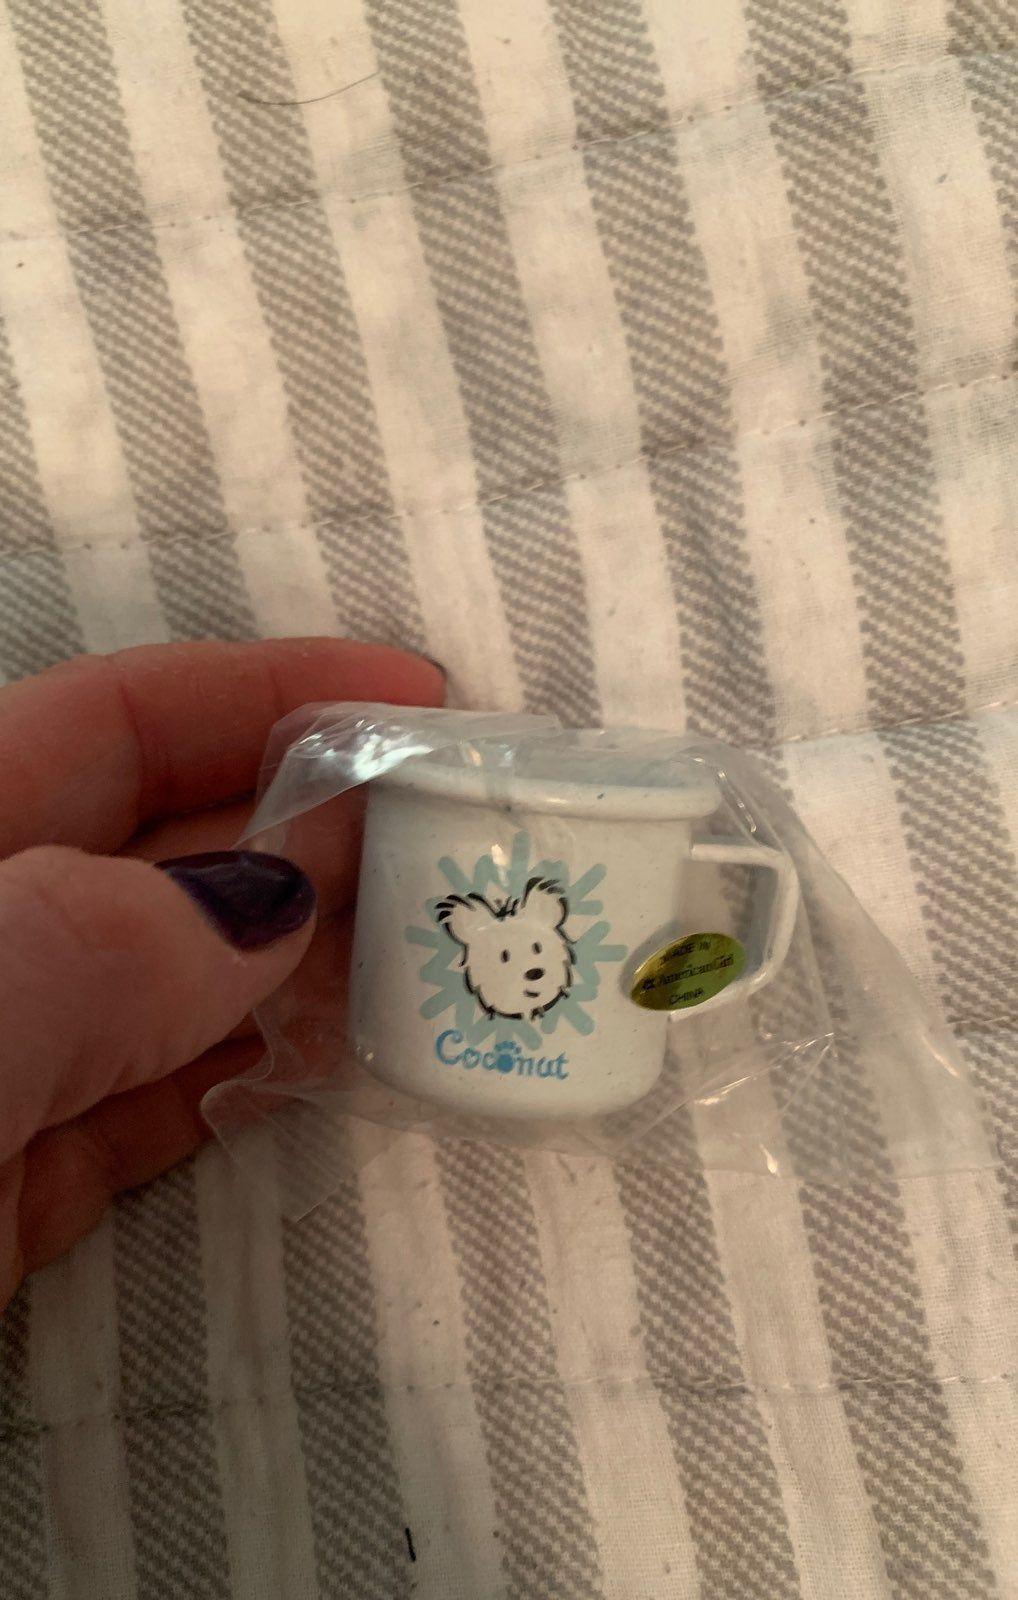 Doll Sized Coconut Mug Brand New In Bag Never Played With From A Smoke Free Home American Girl Doll Accessories Miniature Crafts American Girl Doll